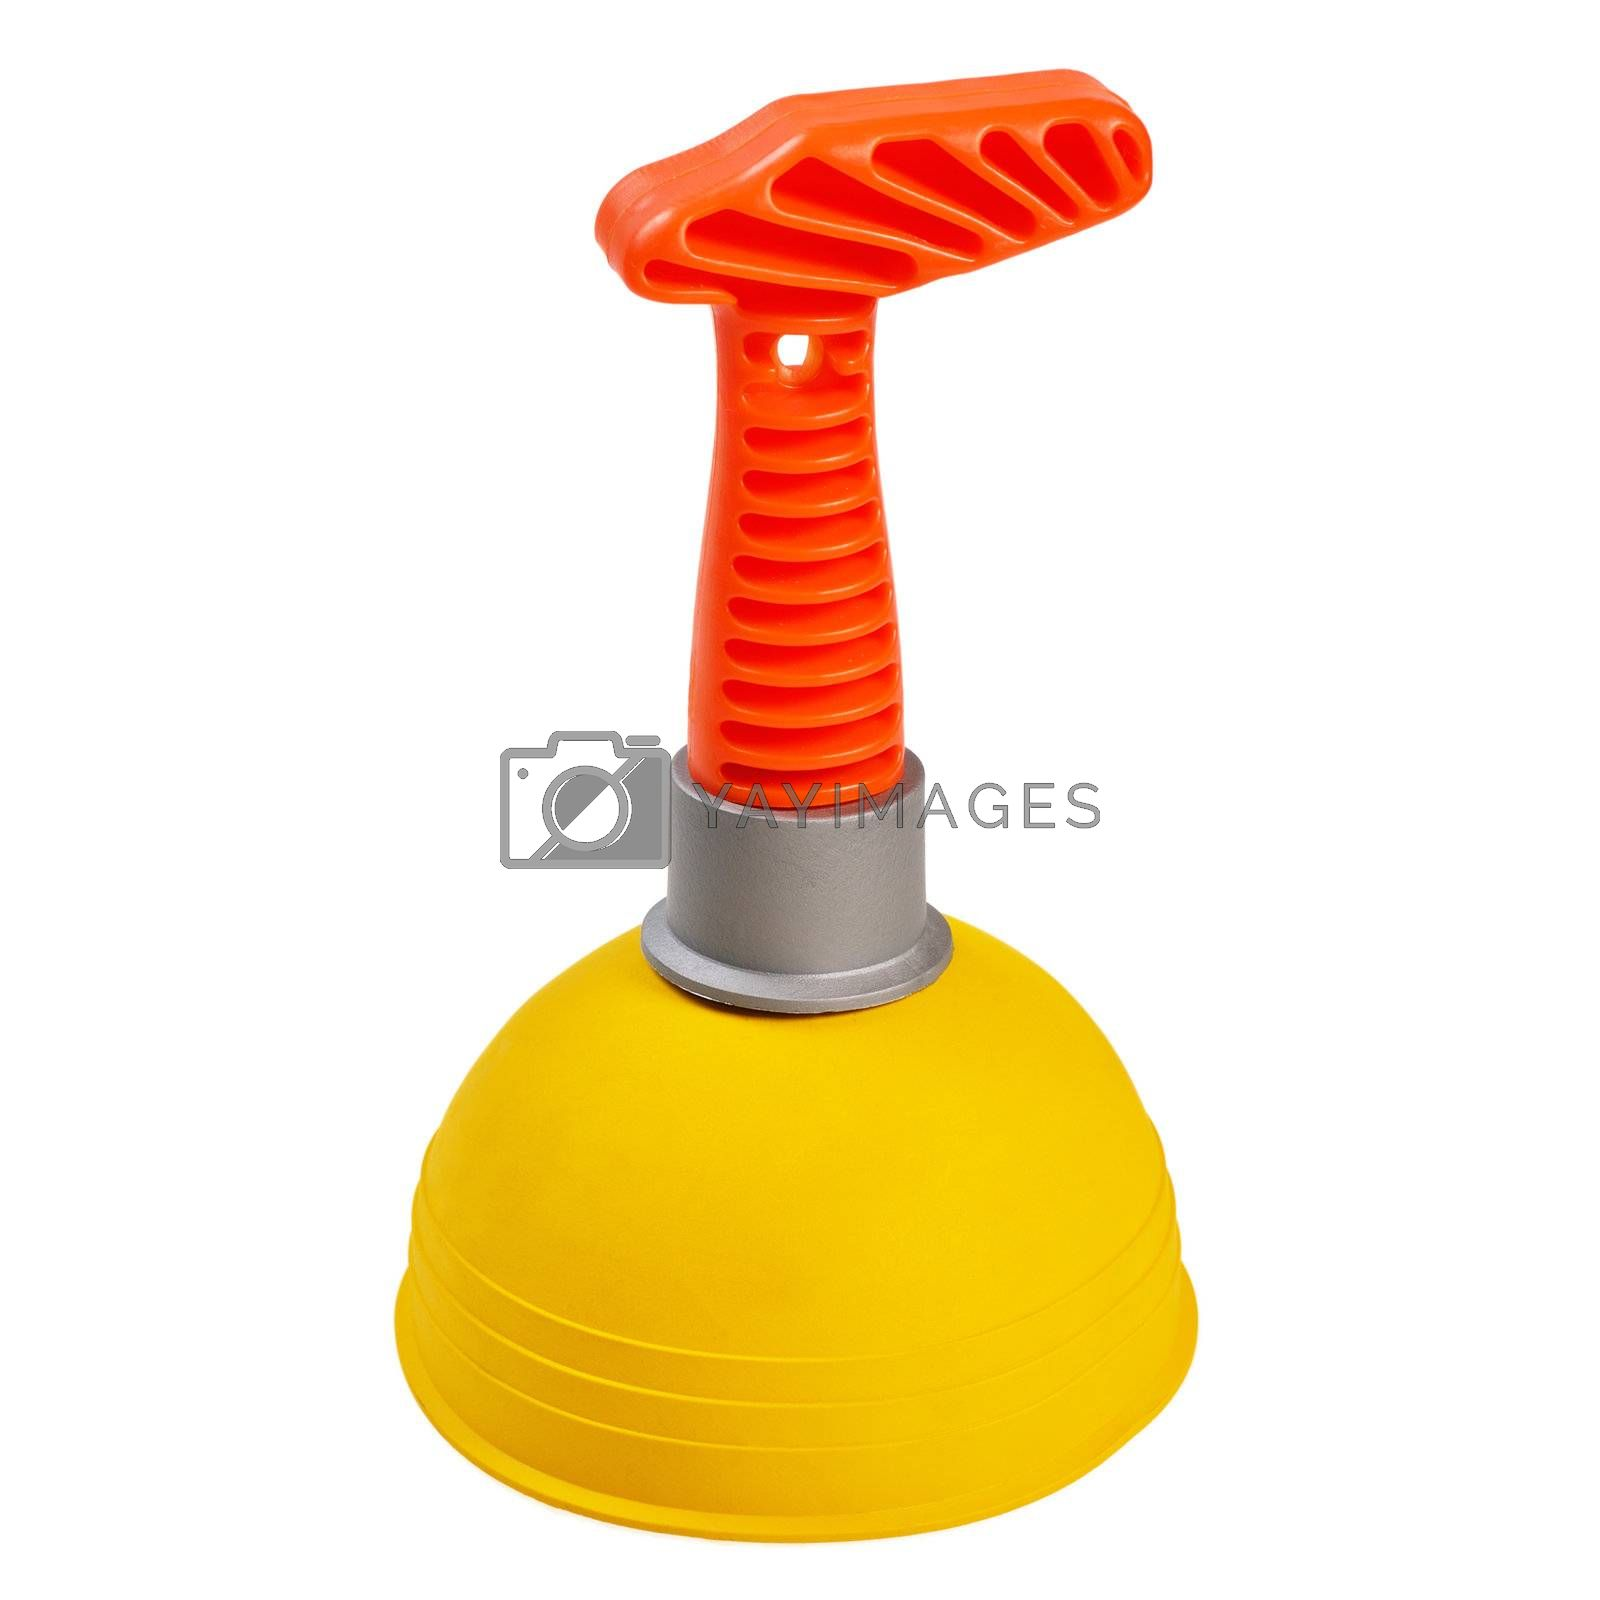 Plunger for the bathroom. Isolated on white background